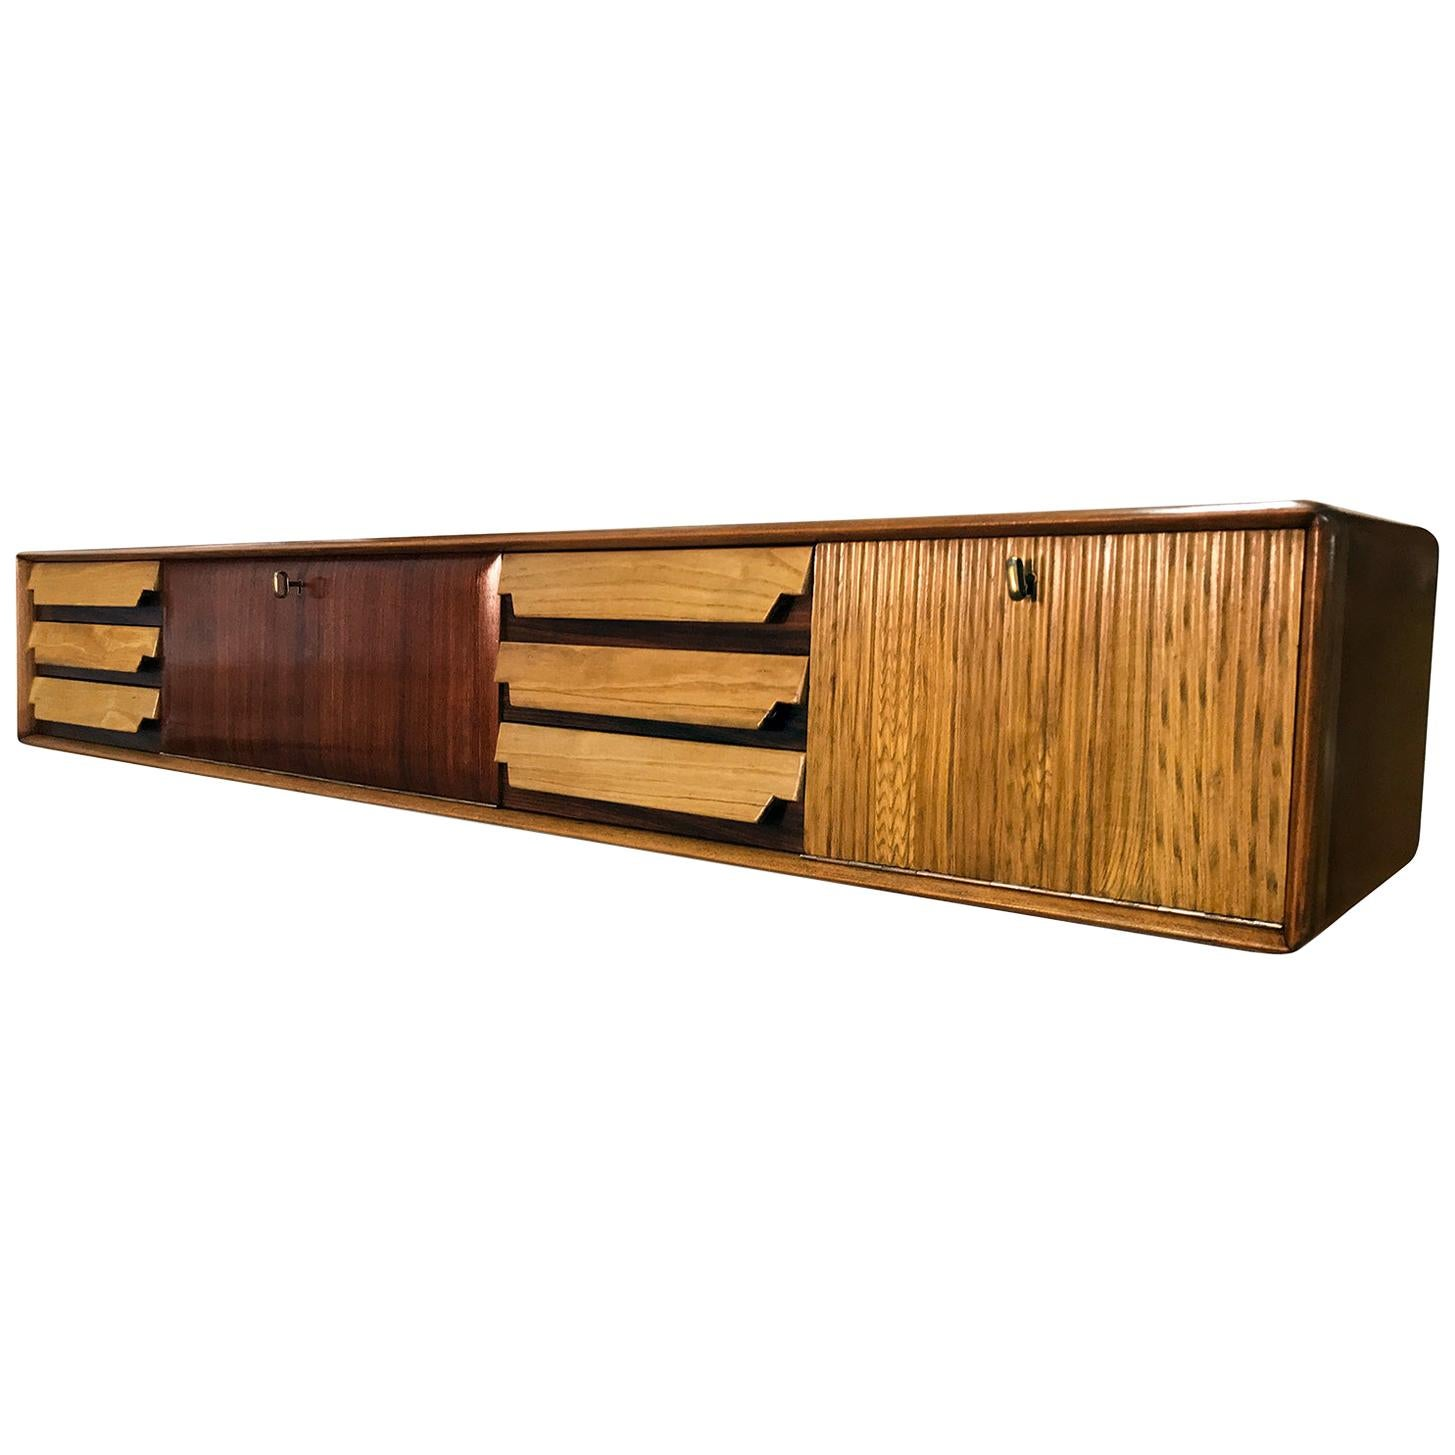 Italian Mid-Century Wall Mounted Sideboard with Drawers by Vittorio Dassi, 1950s